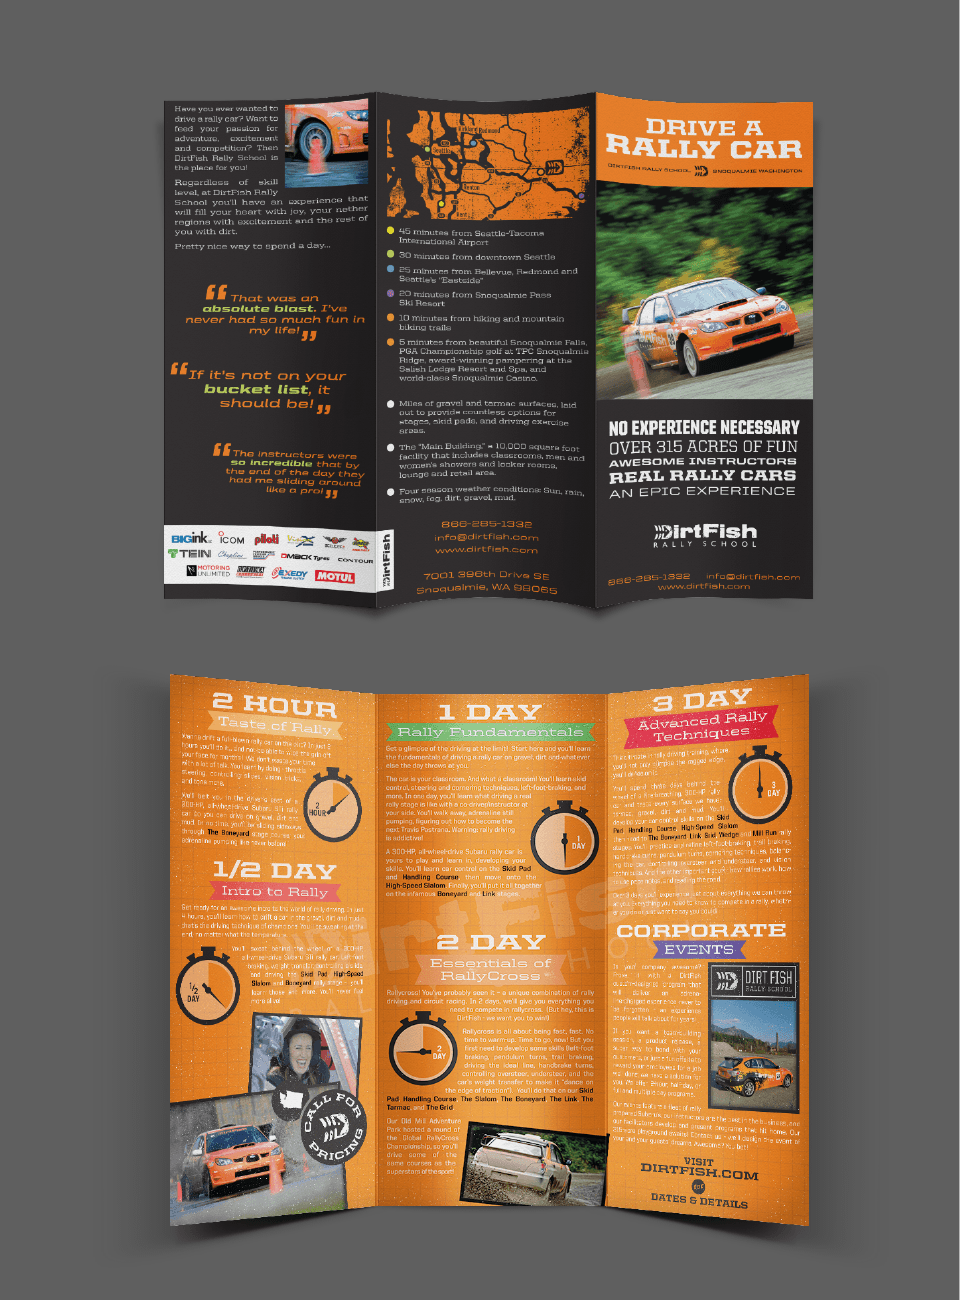 DirtFish Brochure